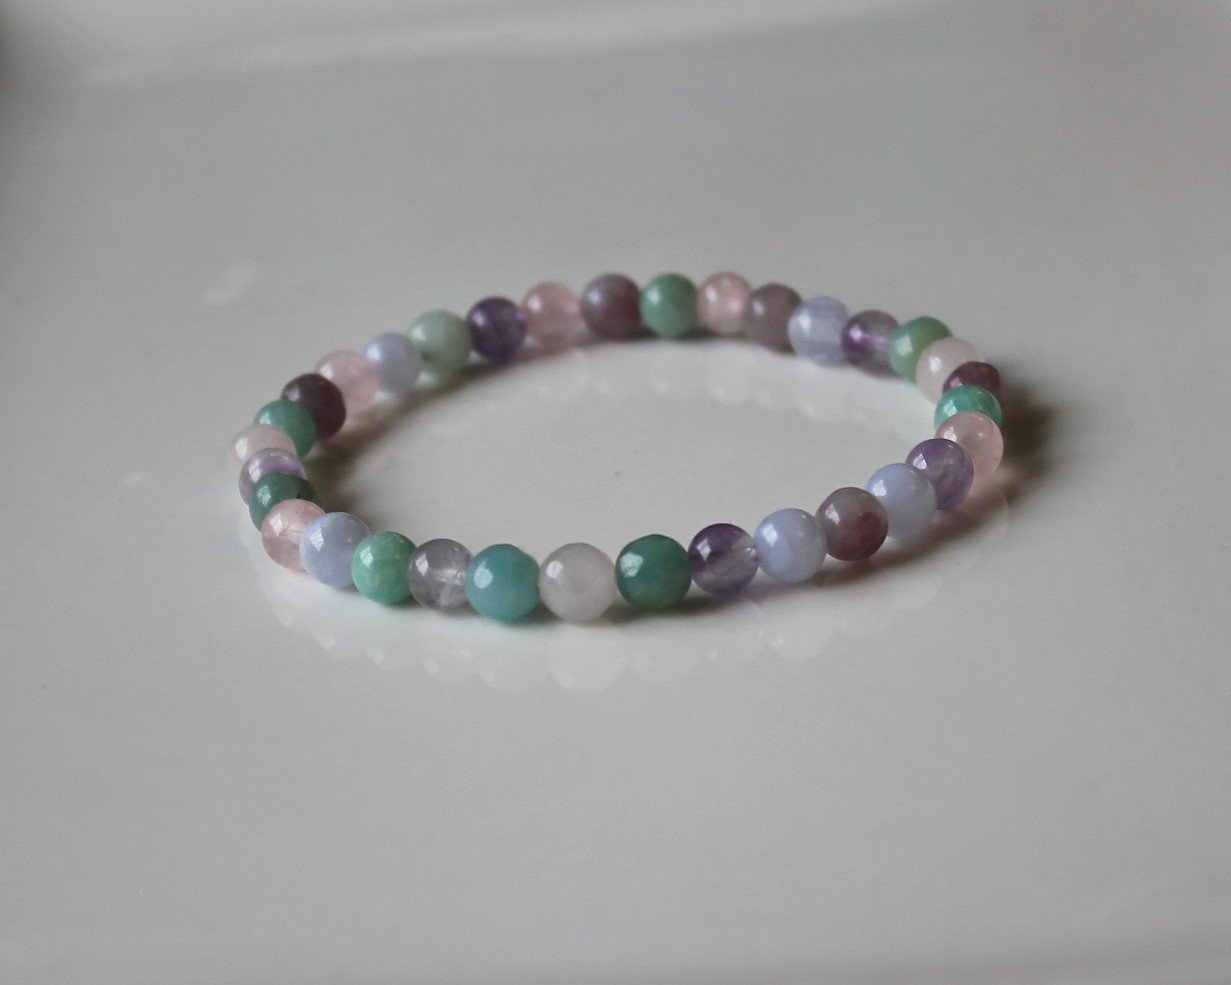 ANXIETY RELIEF BRACELET/Healing Crystal Bracelet/Stress Relief/Dispel negative energy